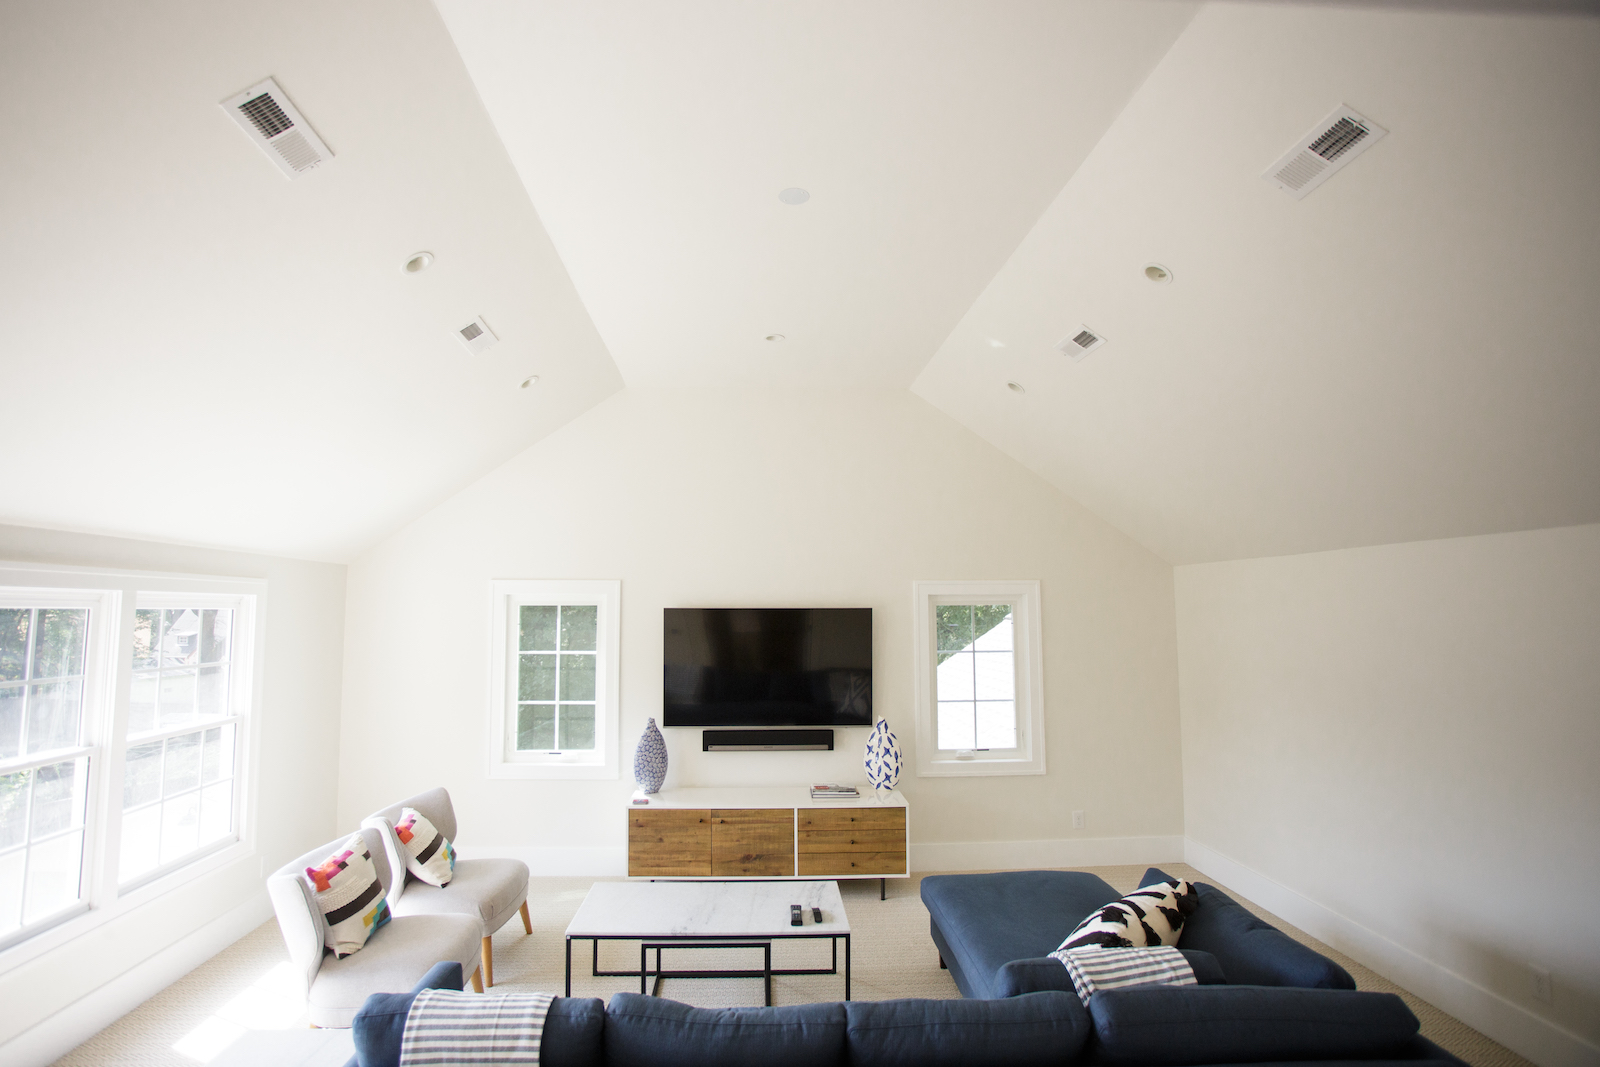 Upstairs recreation area in renovated home